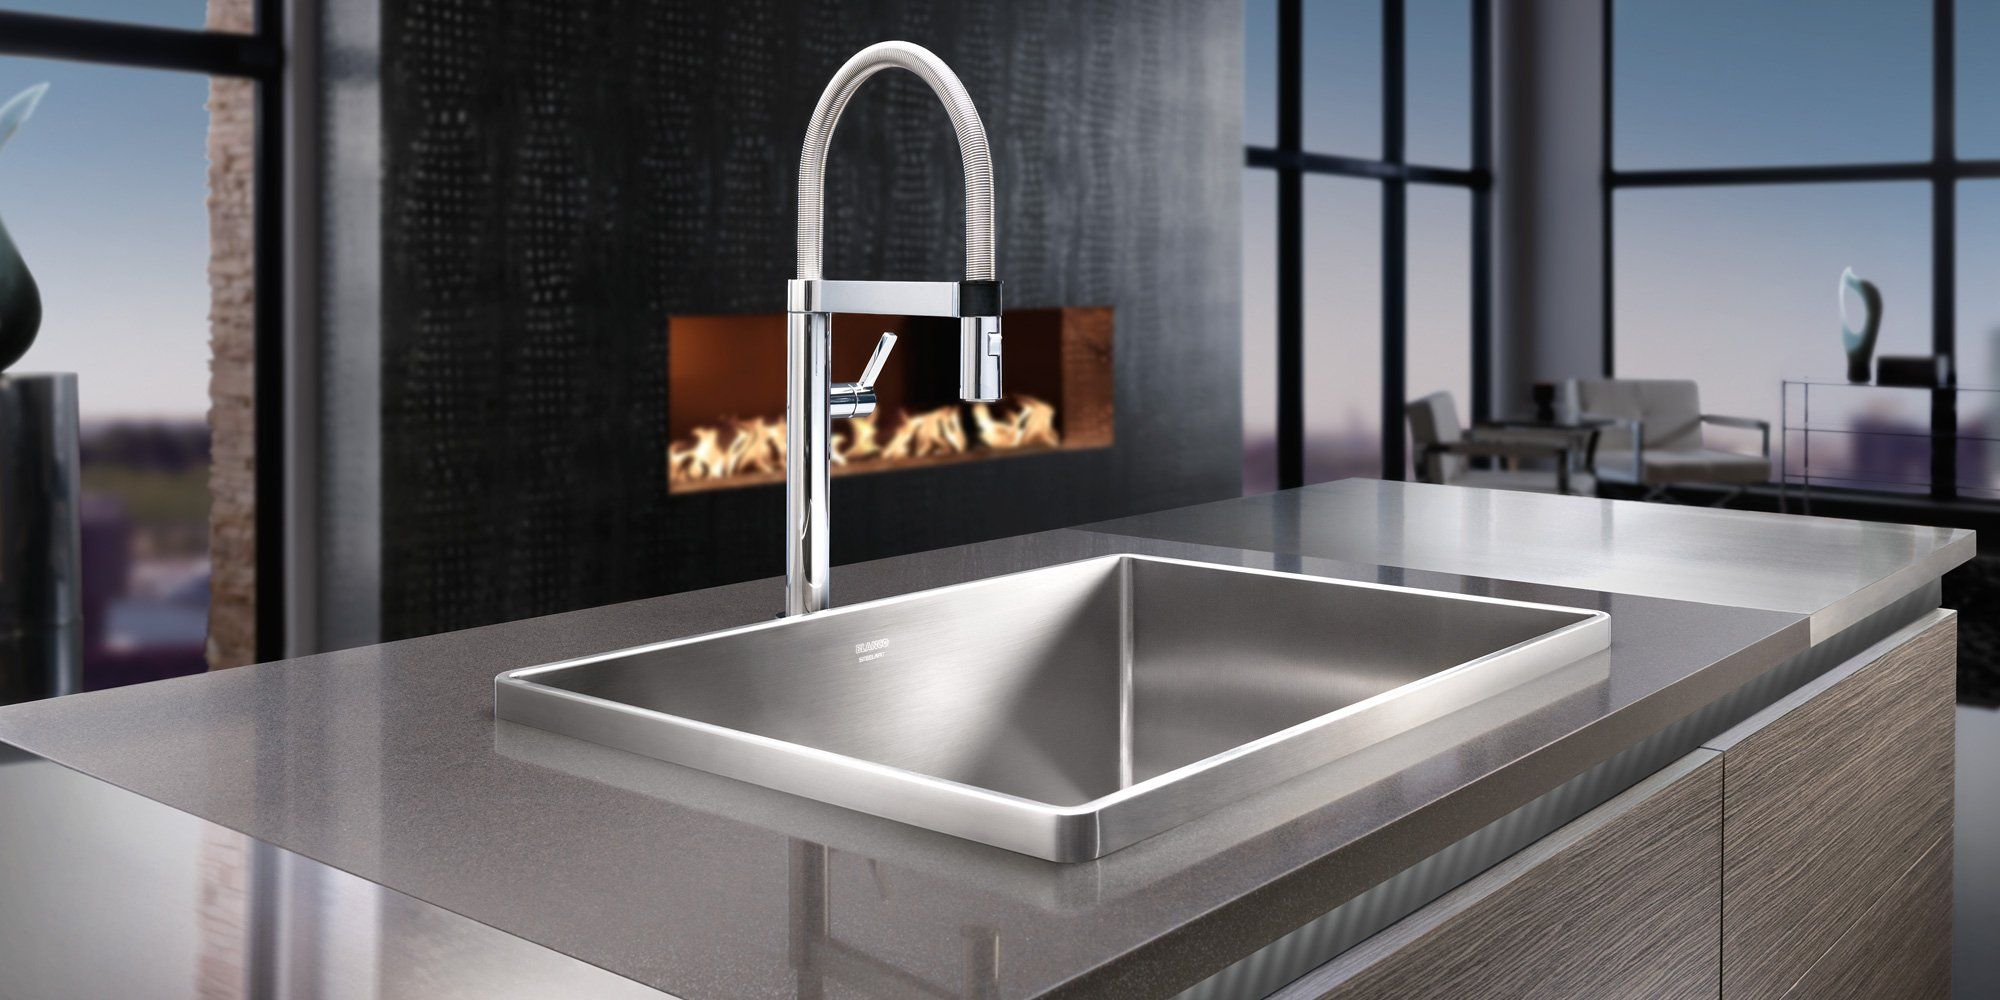 BLANCO Stainless steel kitchen sink